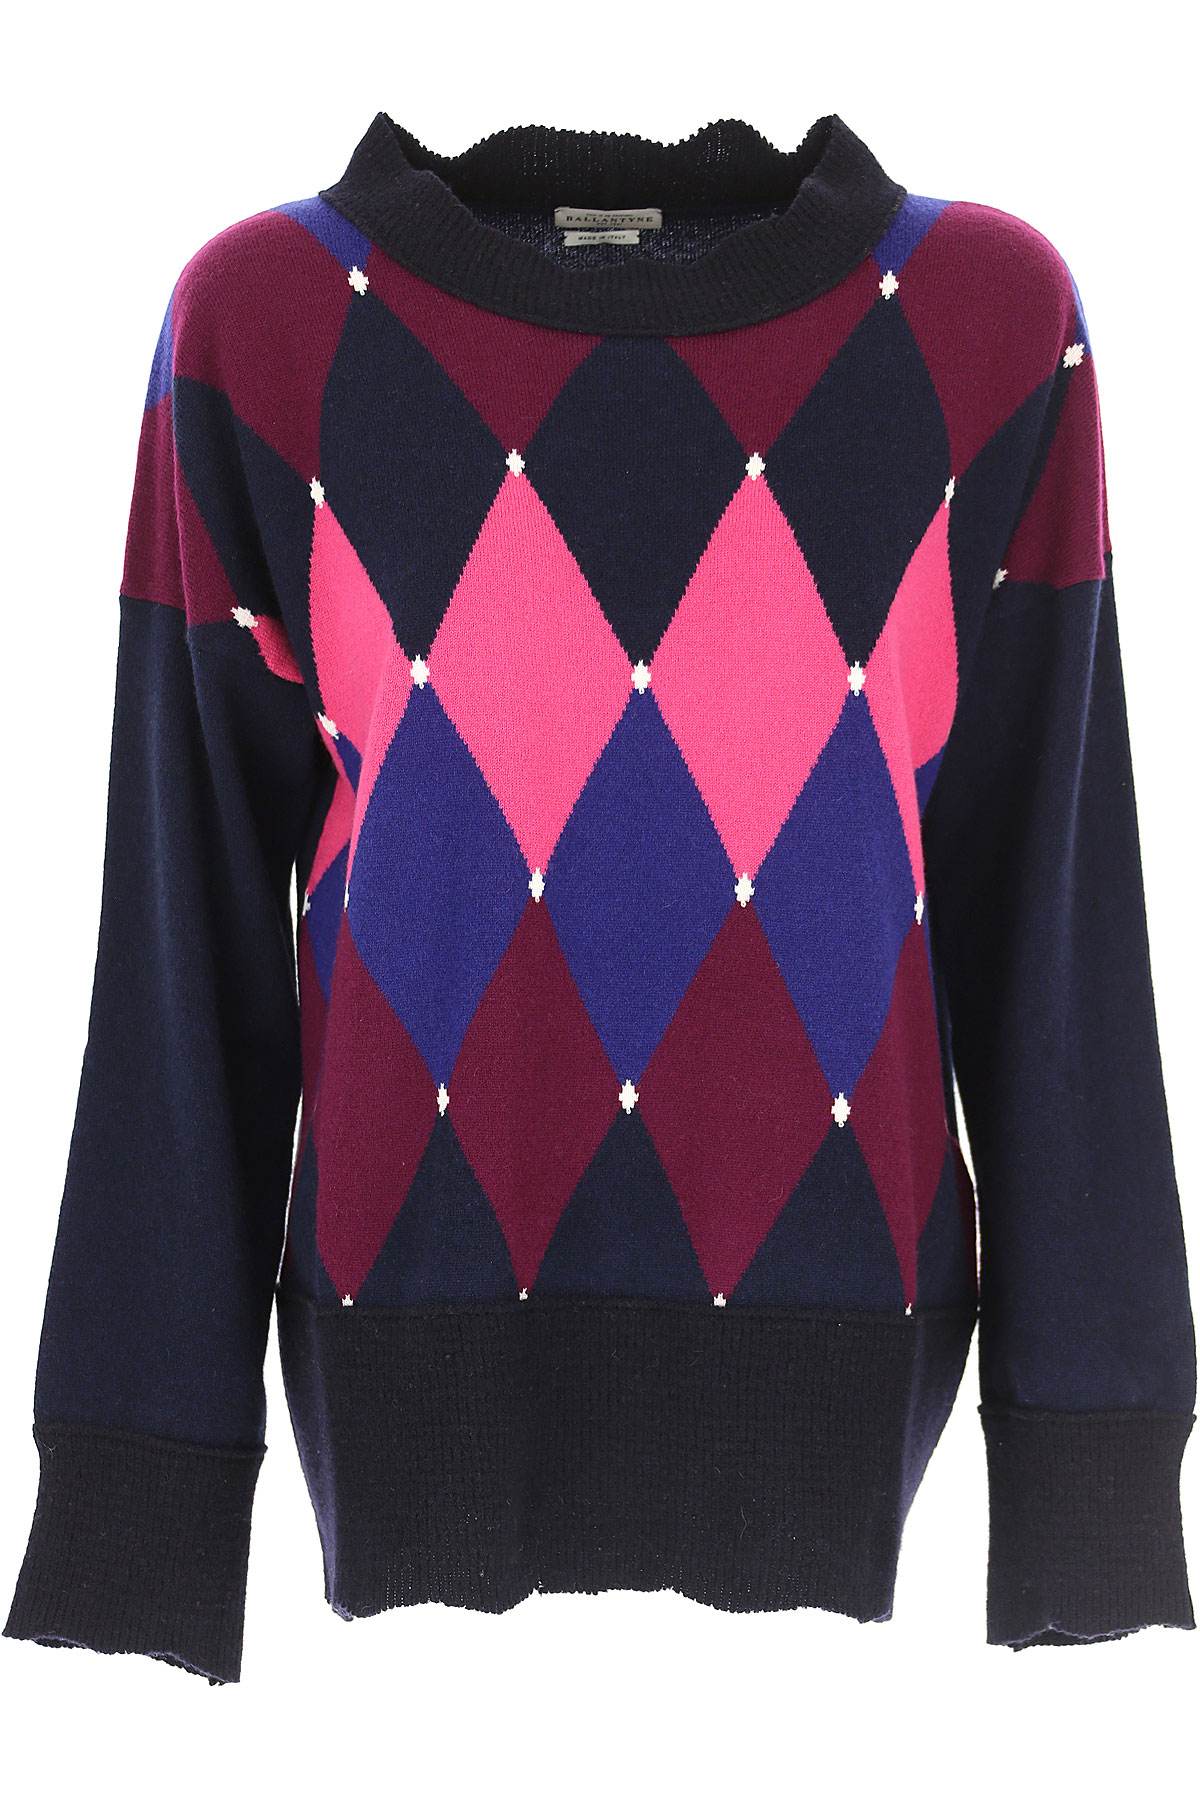 Image of Ballantyne Sweater for Women Jumper, Blue Navy, Cashmere, 2017, 10 6 8